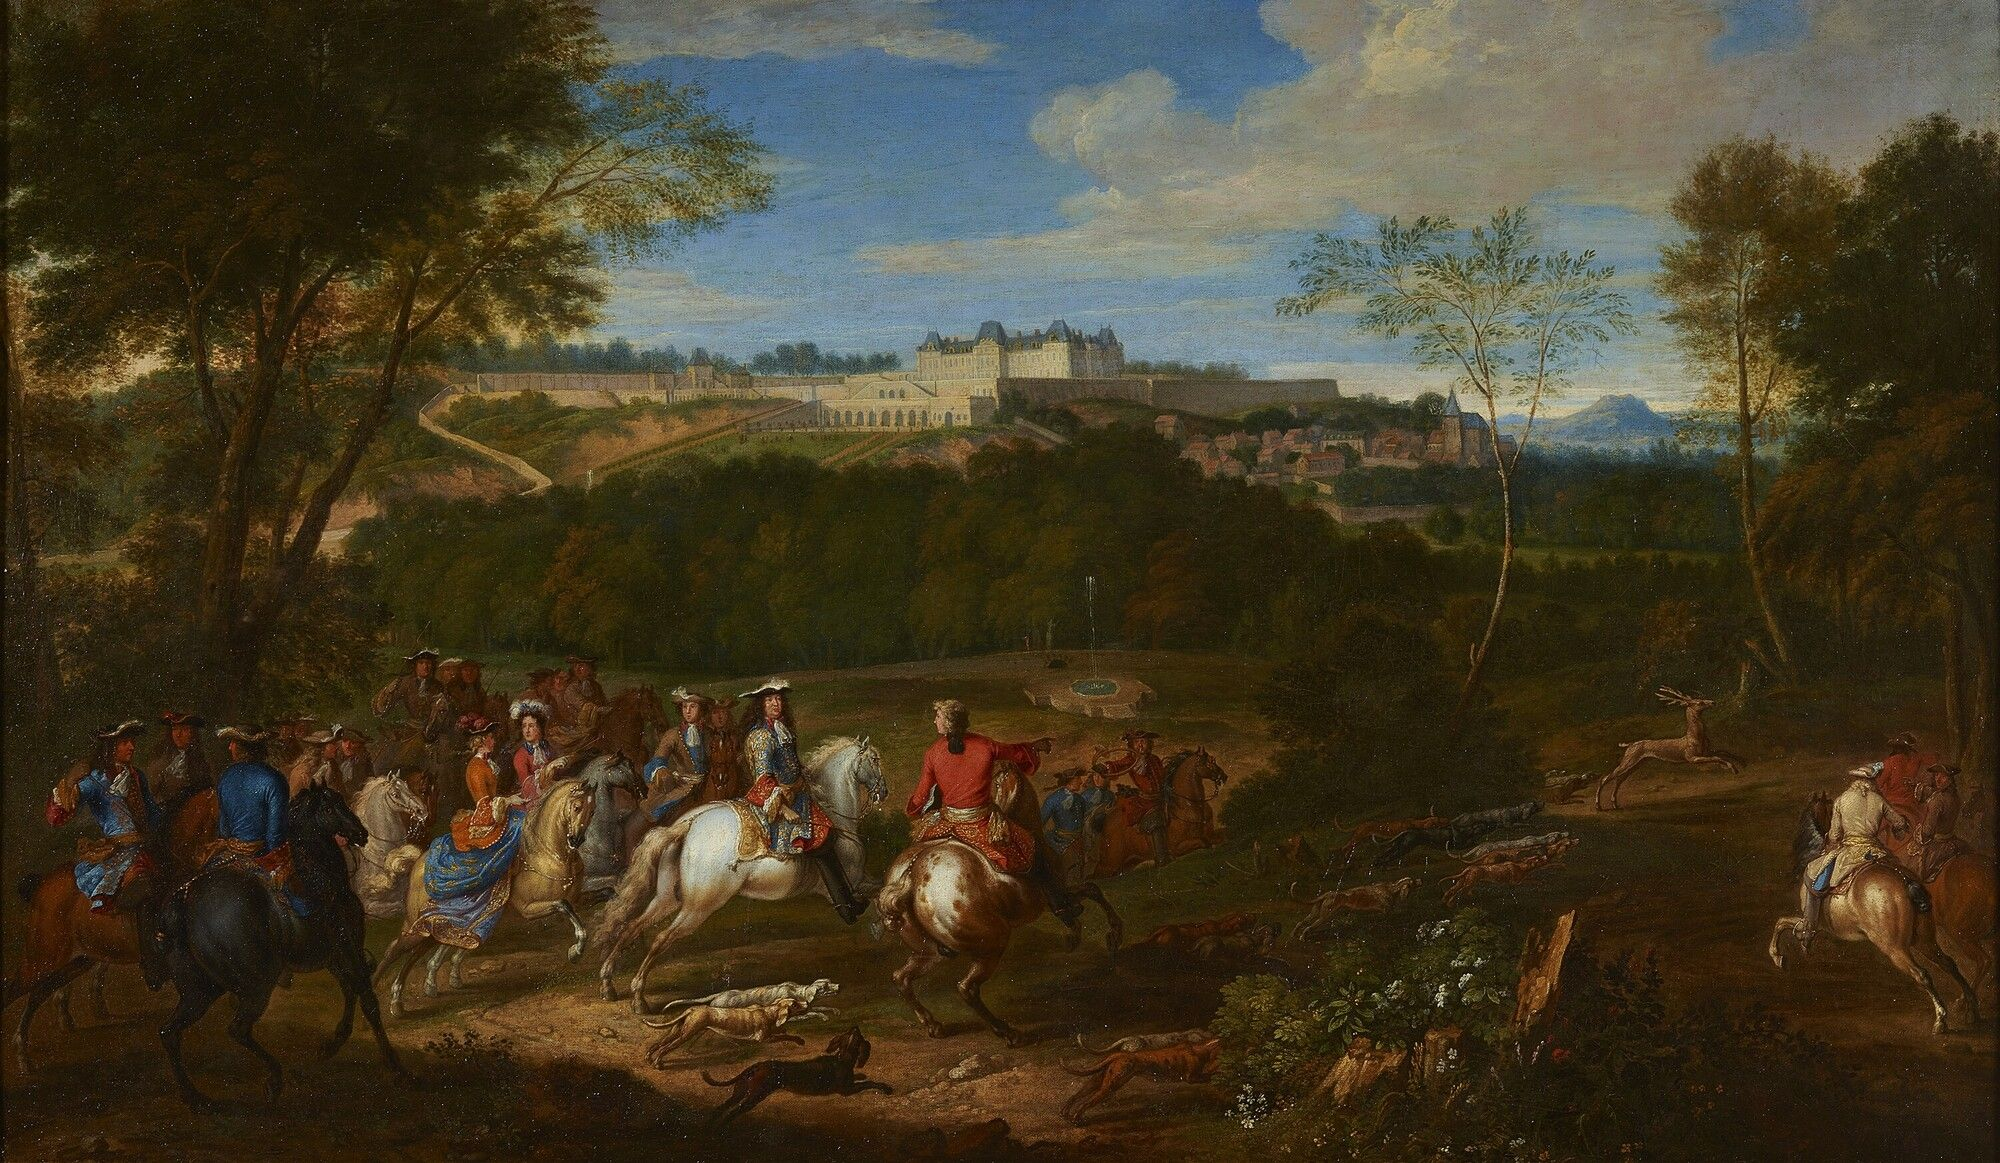 Adam Frans van der Meulen : Louis XIV and his Court hunting in view of the  castle of Meudon (Palace of Versailles) 1632-1690 アダム・フランス・ファン・デル・ミューレン